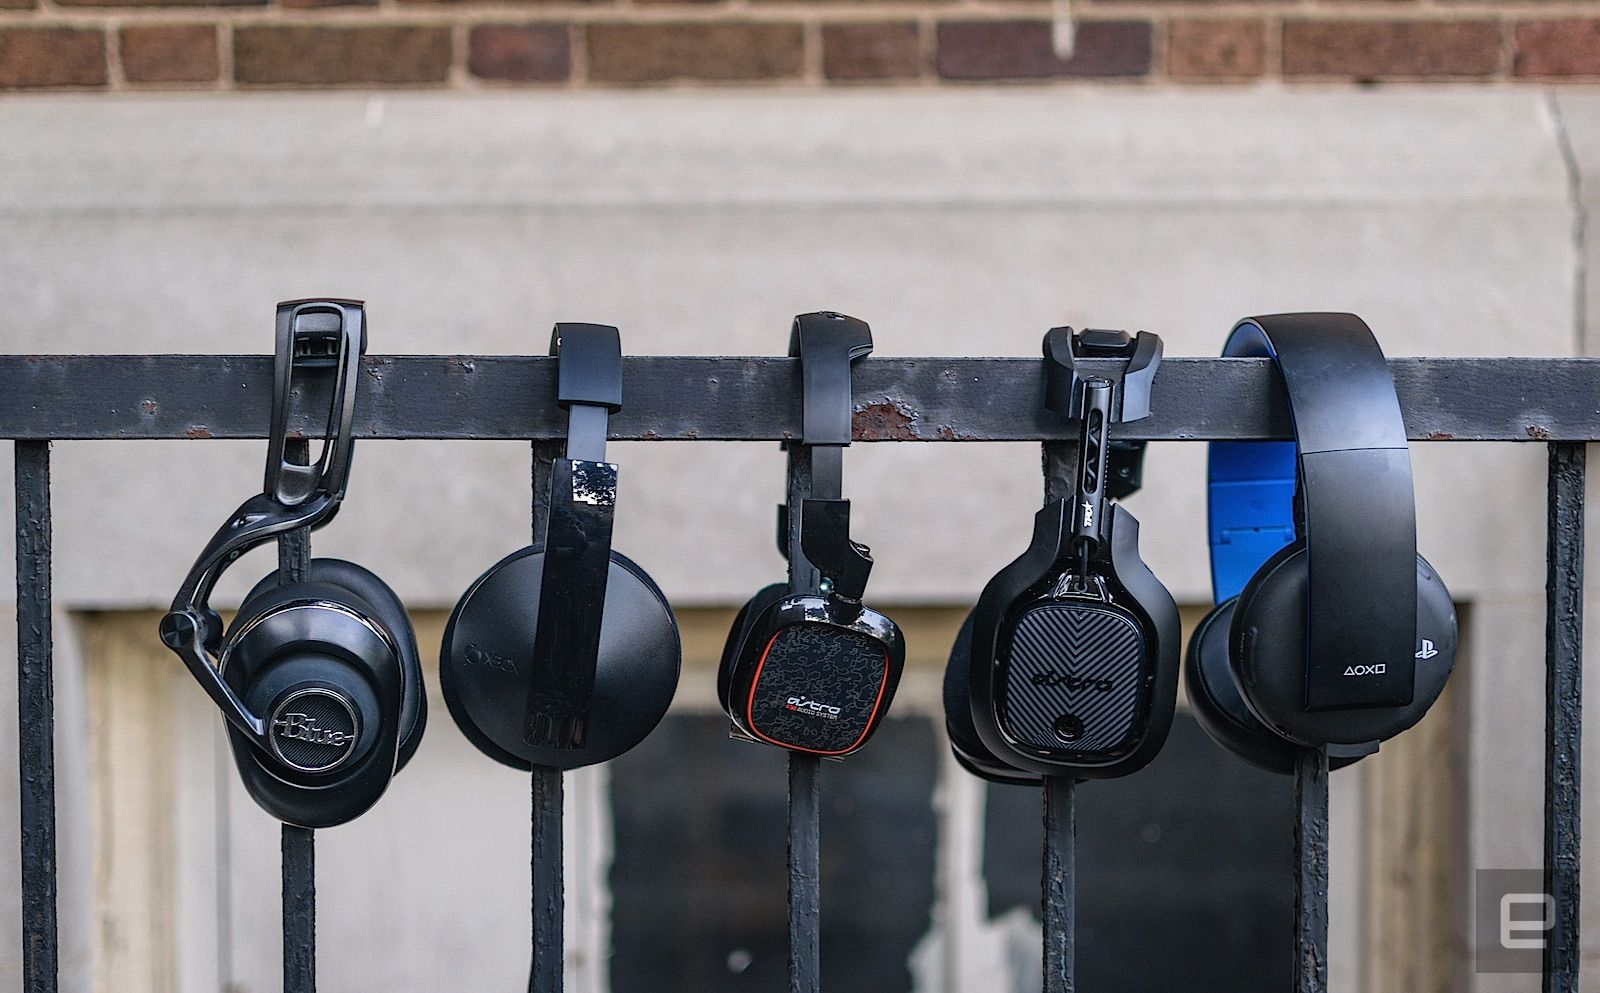 Gaming headset review roundup Five options one favorite